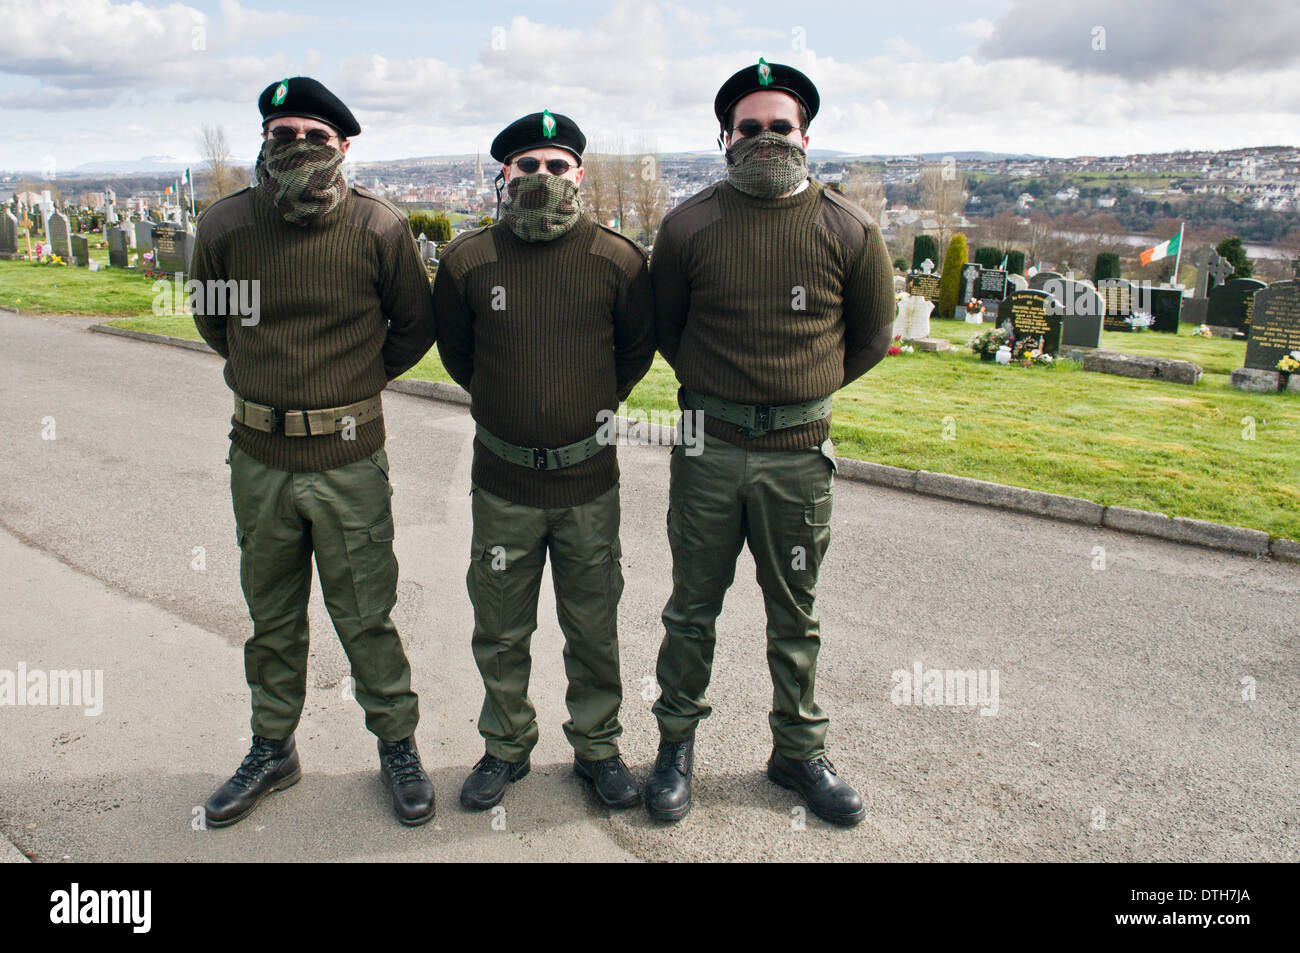 Ira Uniform Stock Photos & Ira...